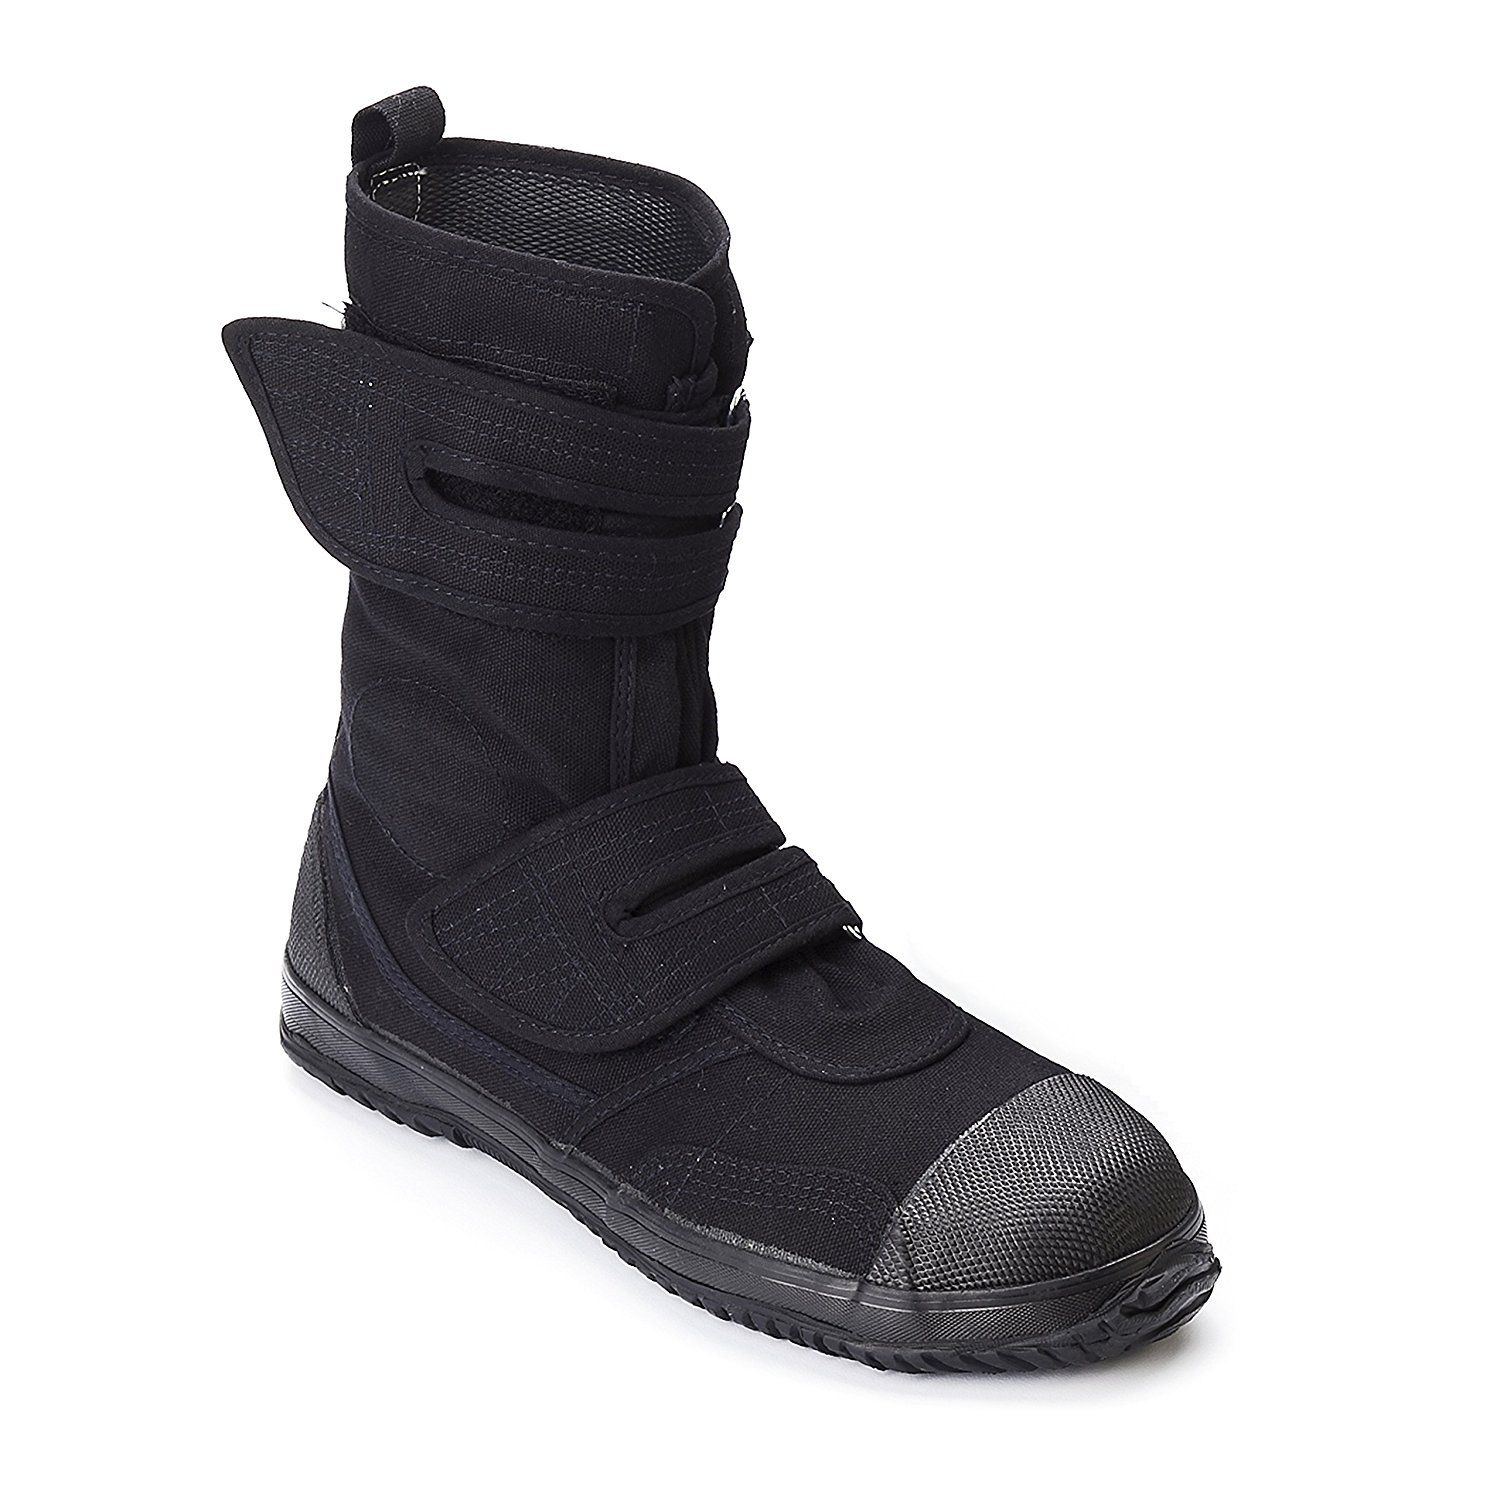 d90cf5eb03f39 Fugu Japanese Industrial Safety Boots- Eco-Friendly Vegan Shoes ...